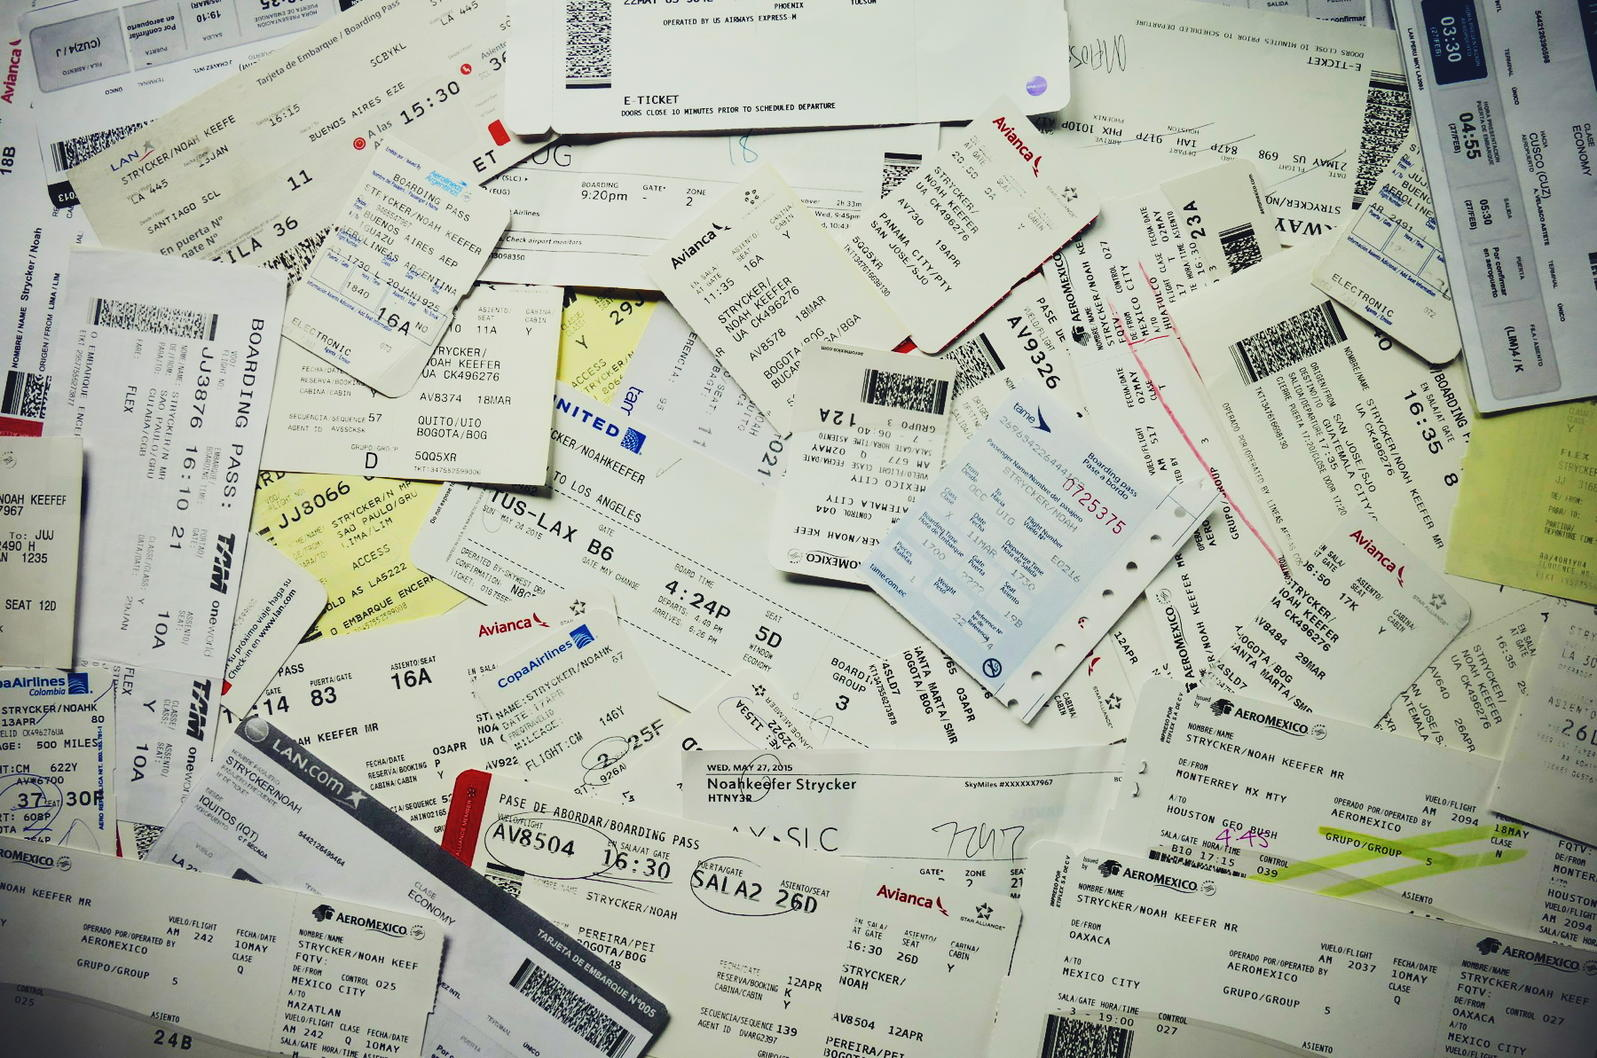 Noah's boarding passes from the first five months of the year. Noah Strycker